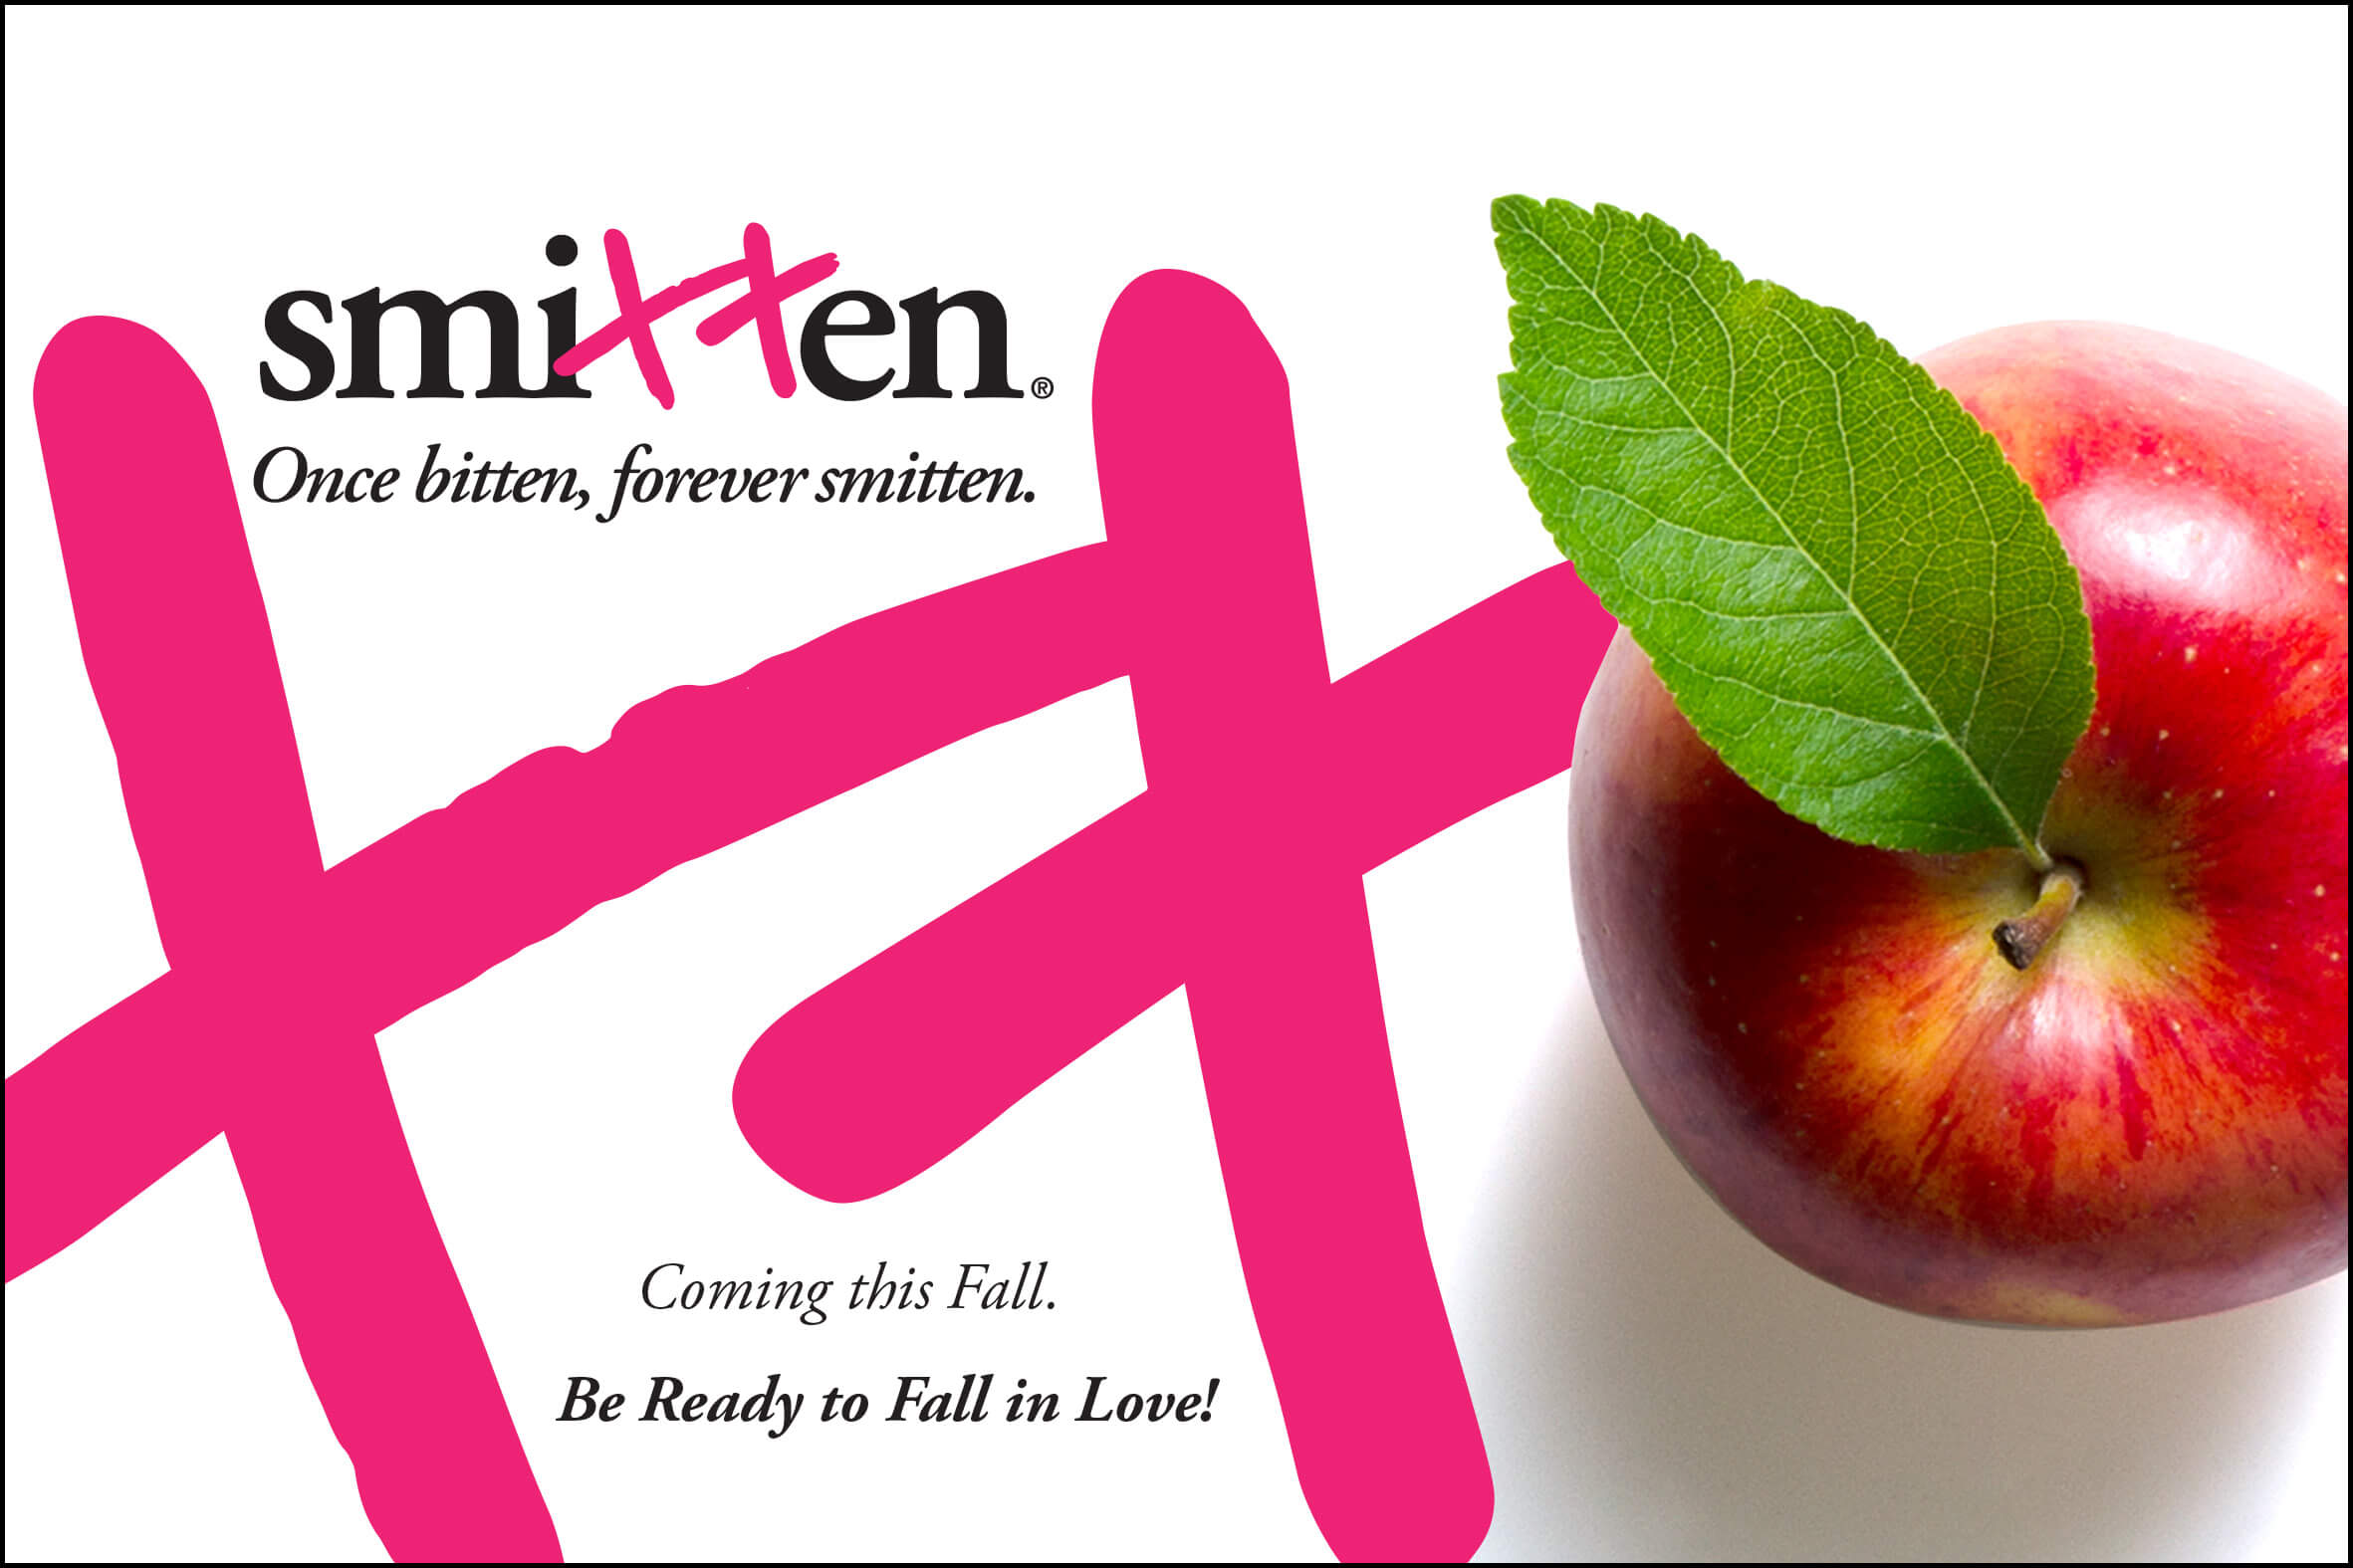 The promotion of Belleharvest's proprietary apple variety, Smitten, includes merchandising plans for the central U.S. and retail point-of-sale pieces, such as this.